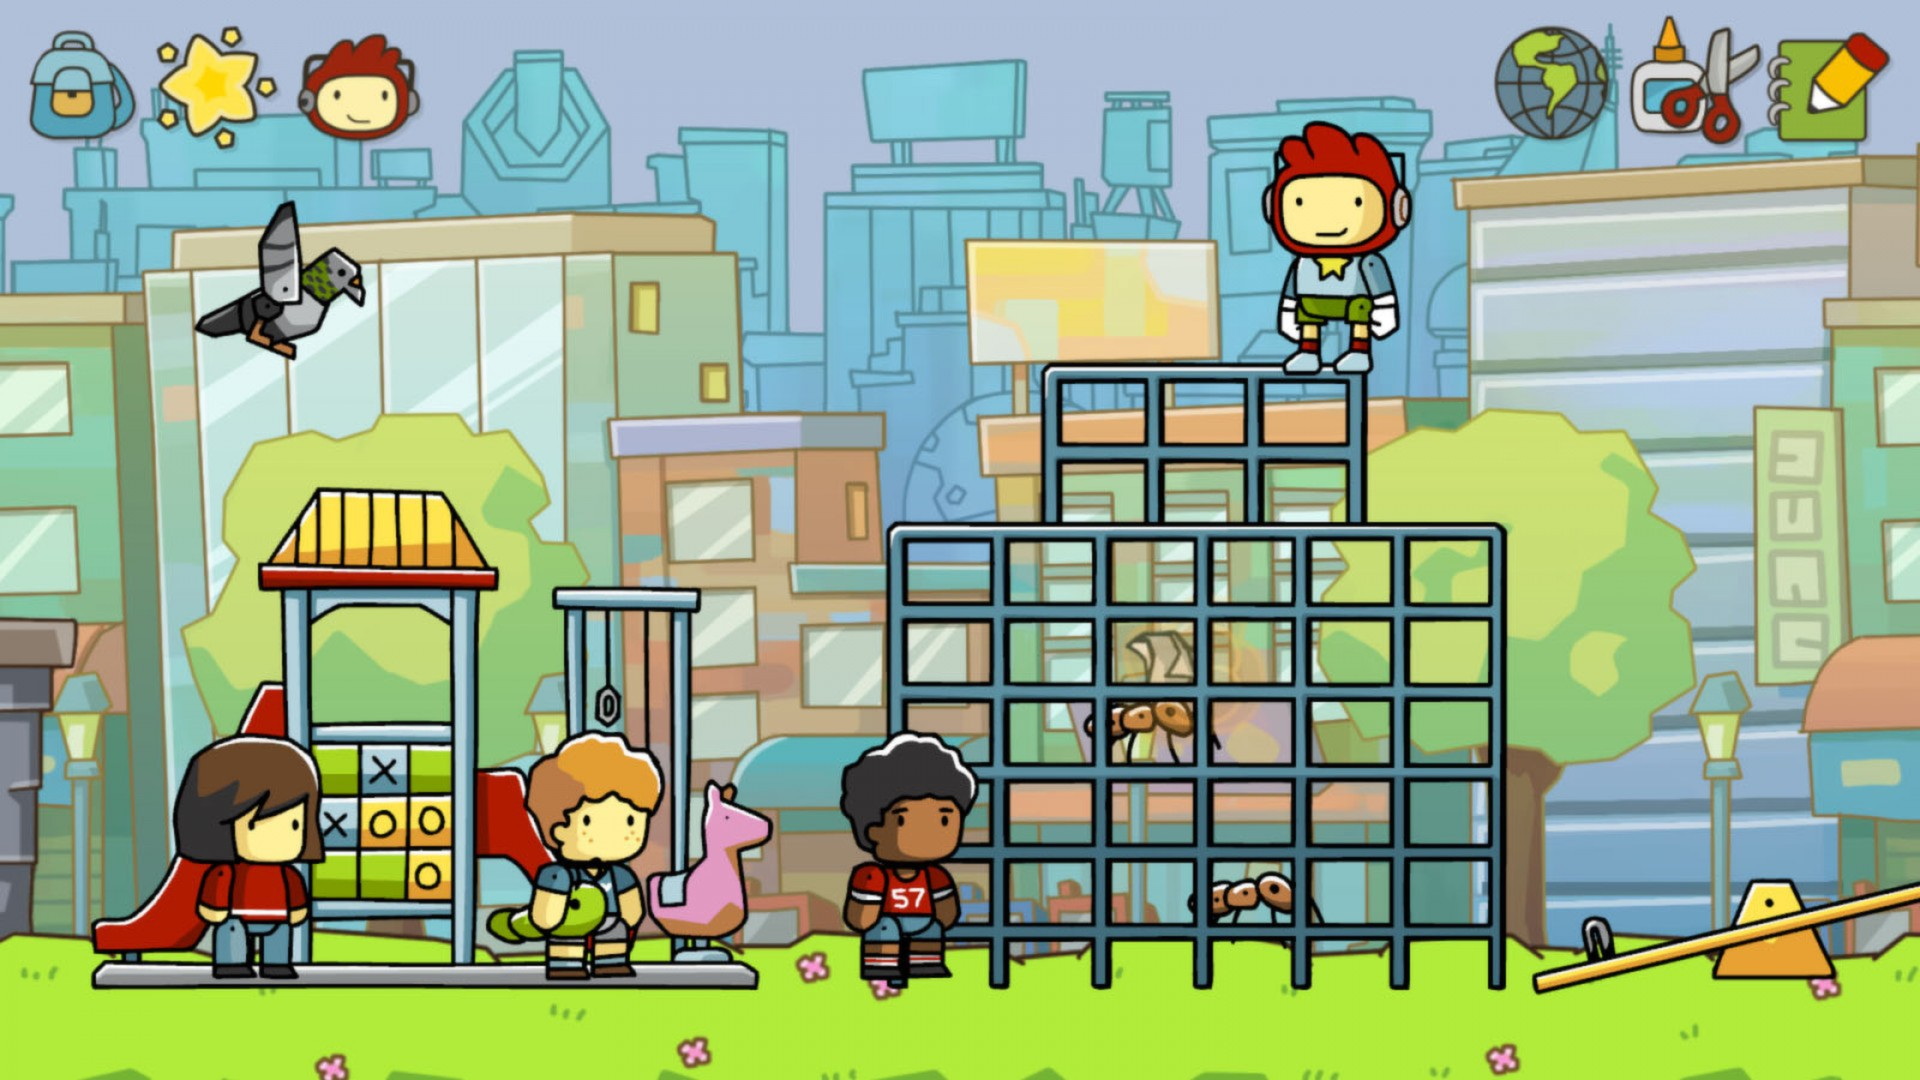 Scribblenauts Unlimited - Steam - IGVault